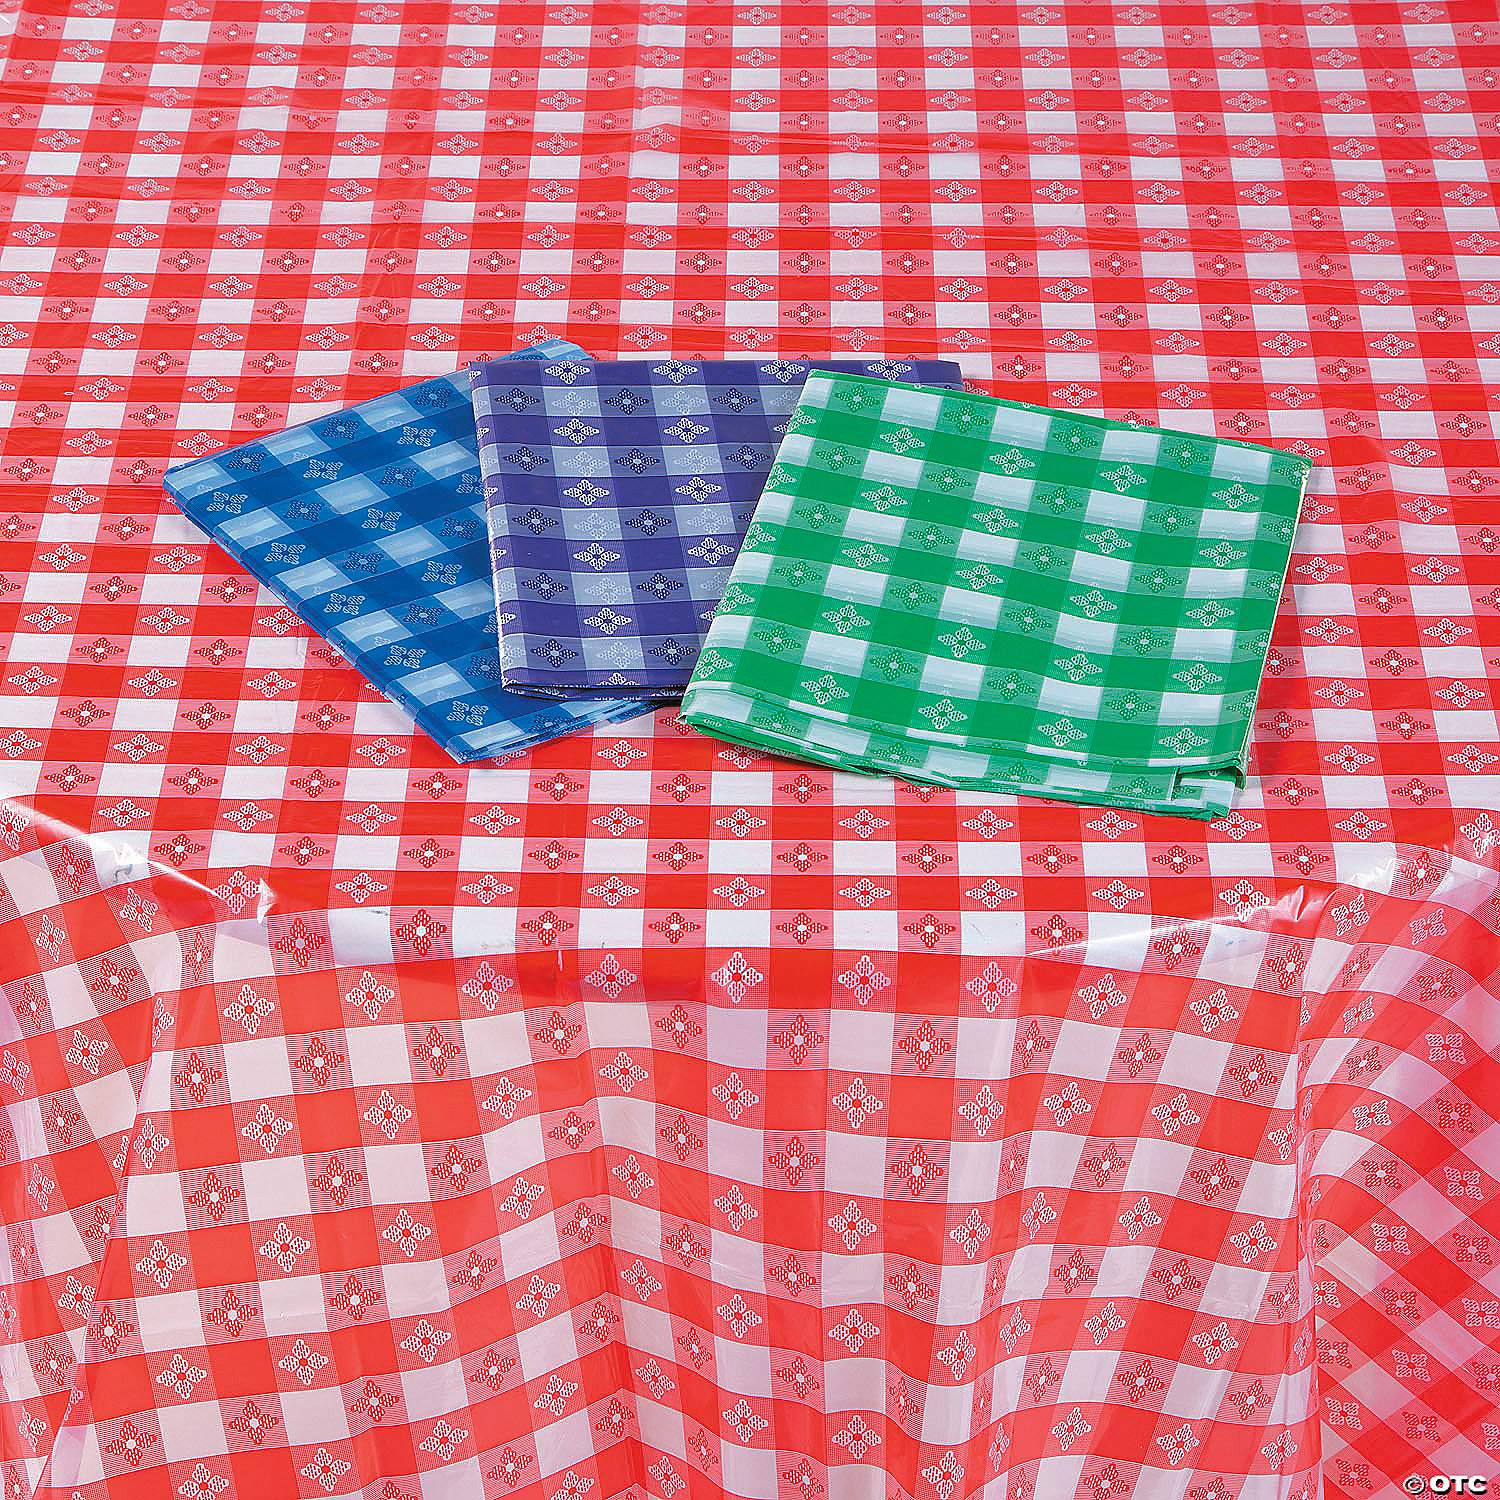 "Plastic Tablecloth Disposable Lattice Gingham Checkered Table Skirt Table Cover for Birthday Party Wedding Banquet Picnic Barbecue Restaurant Hotel Party Supplies Rectangle 54 x108/"" Black, 2PACK"